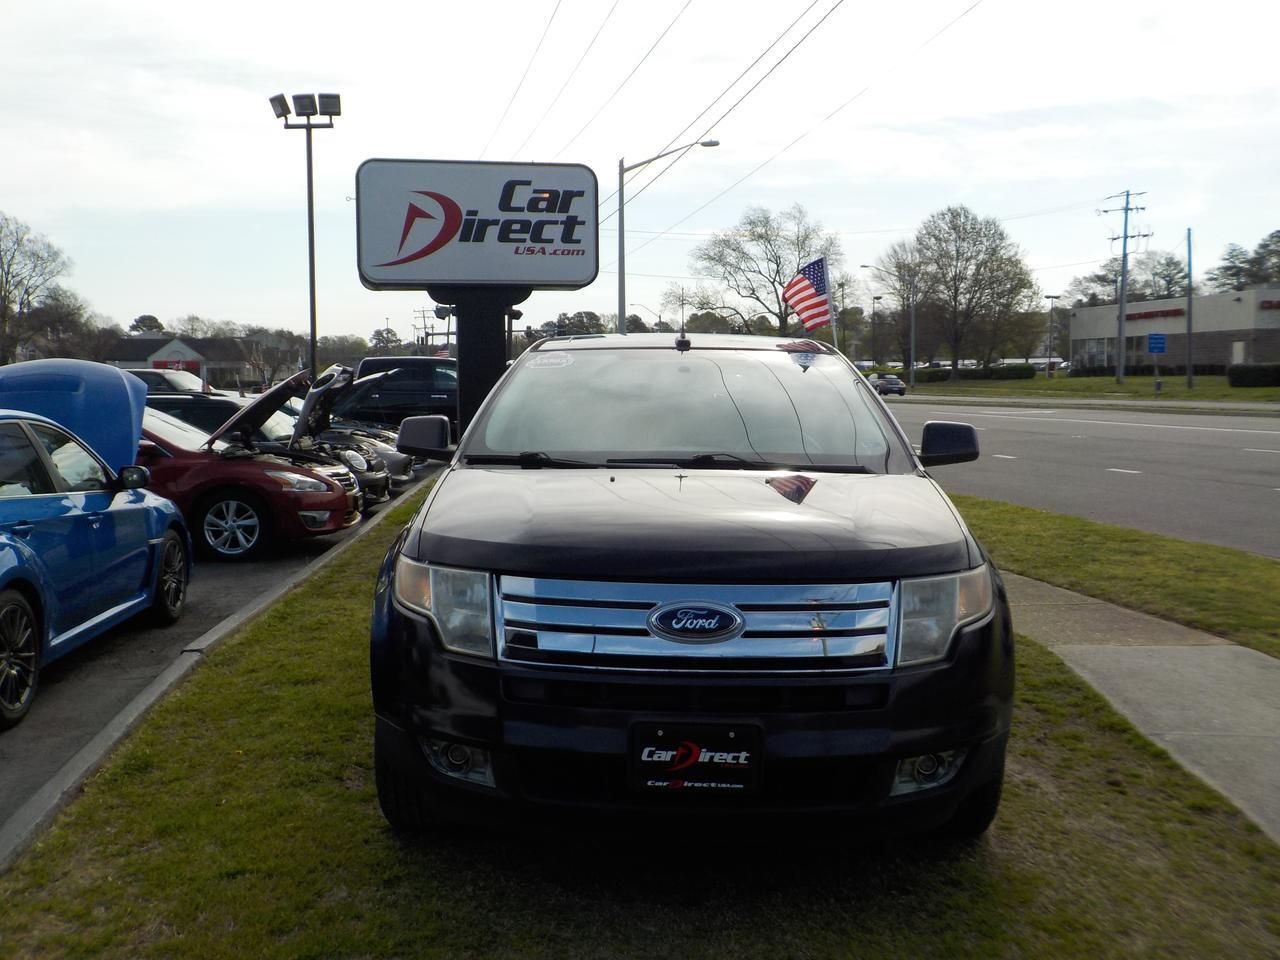 2007 FORD EDGE SEL PLUS AWD, WARRANTY, PANO ROOF, PARKING SENSORS, NAVIGATION, HEATED SEATS, BLUETOOTH, LEATHER! Virginia Beach VA